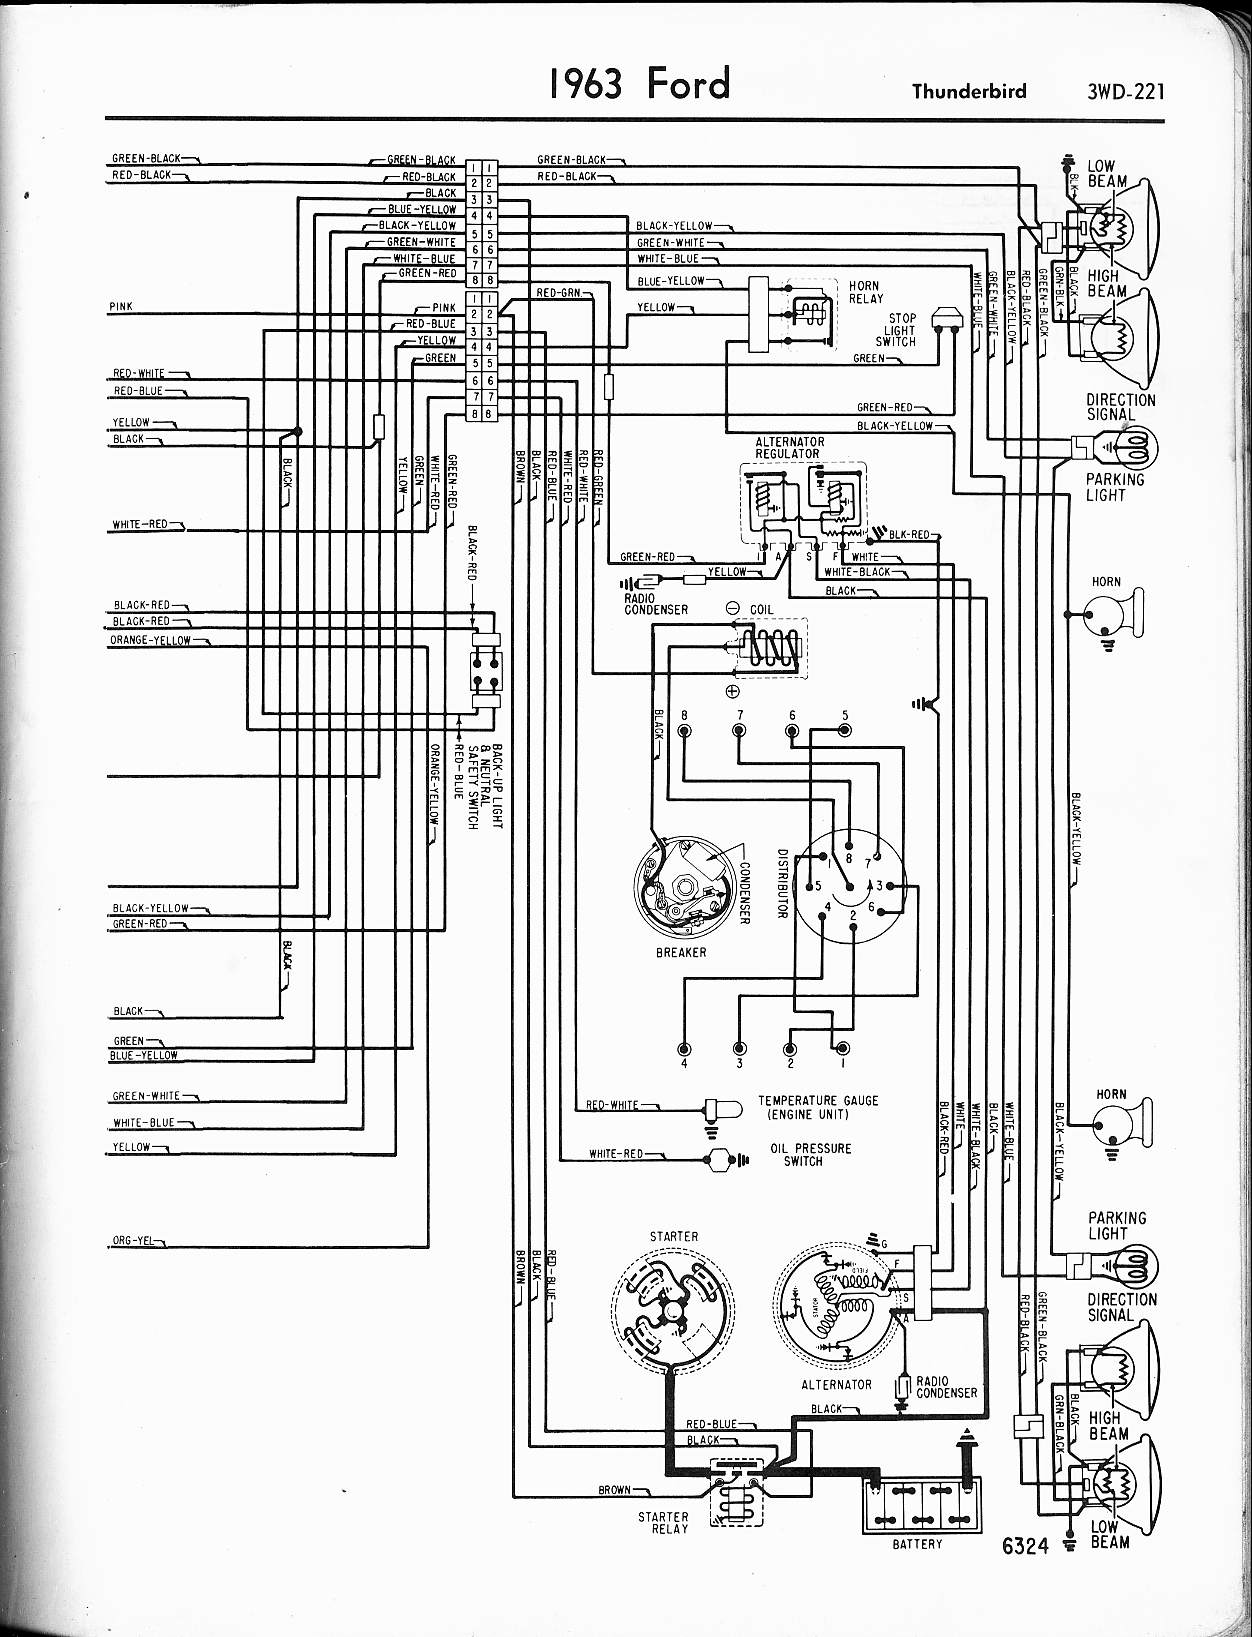 MWire5765 221 57 65 ford wiring diagrams 1963 mercury comet wiring diagram at fashall.co